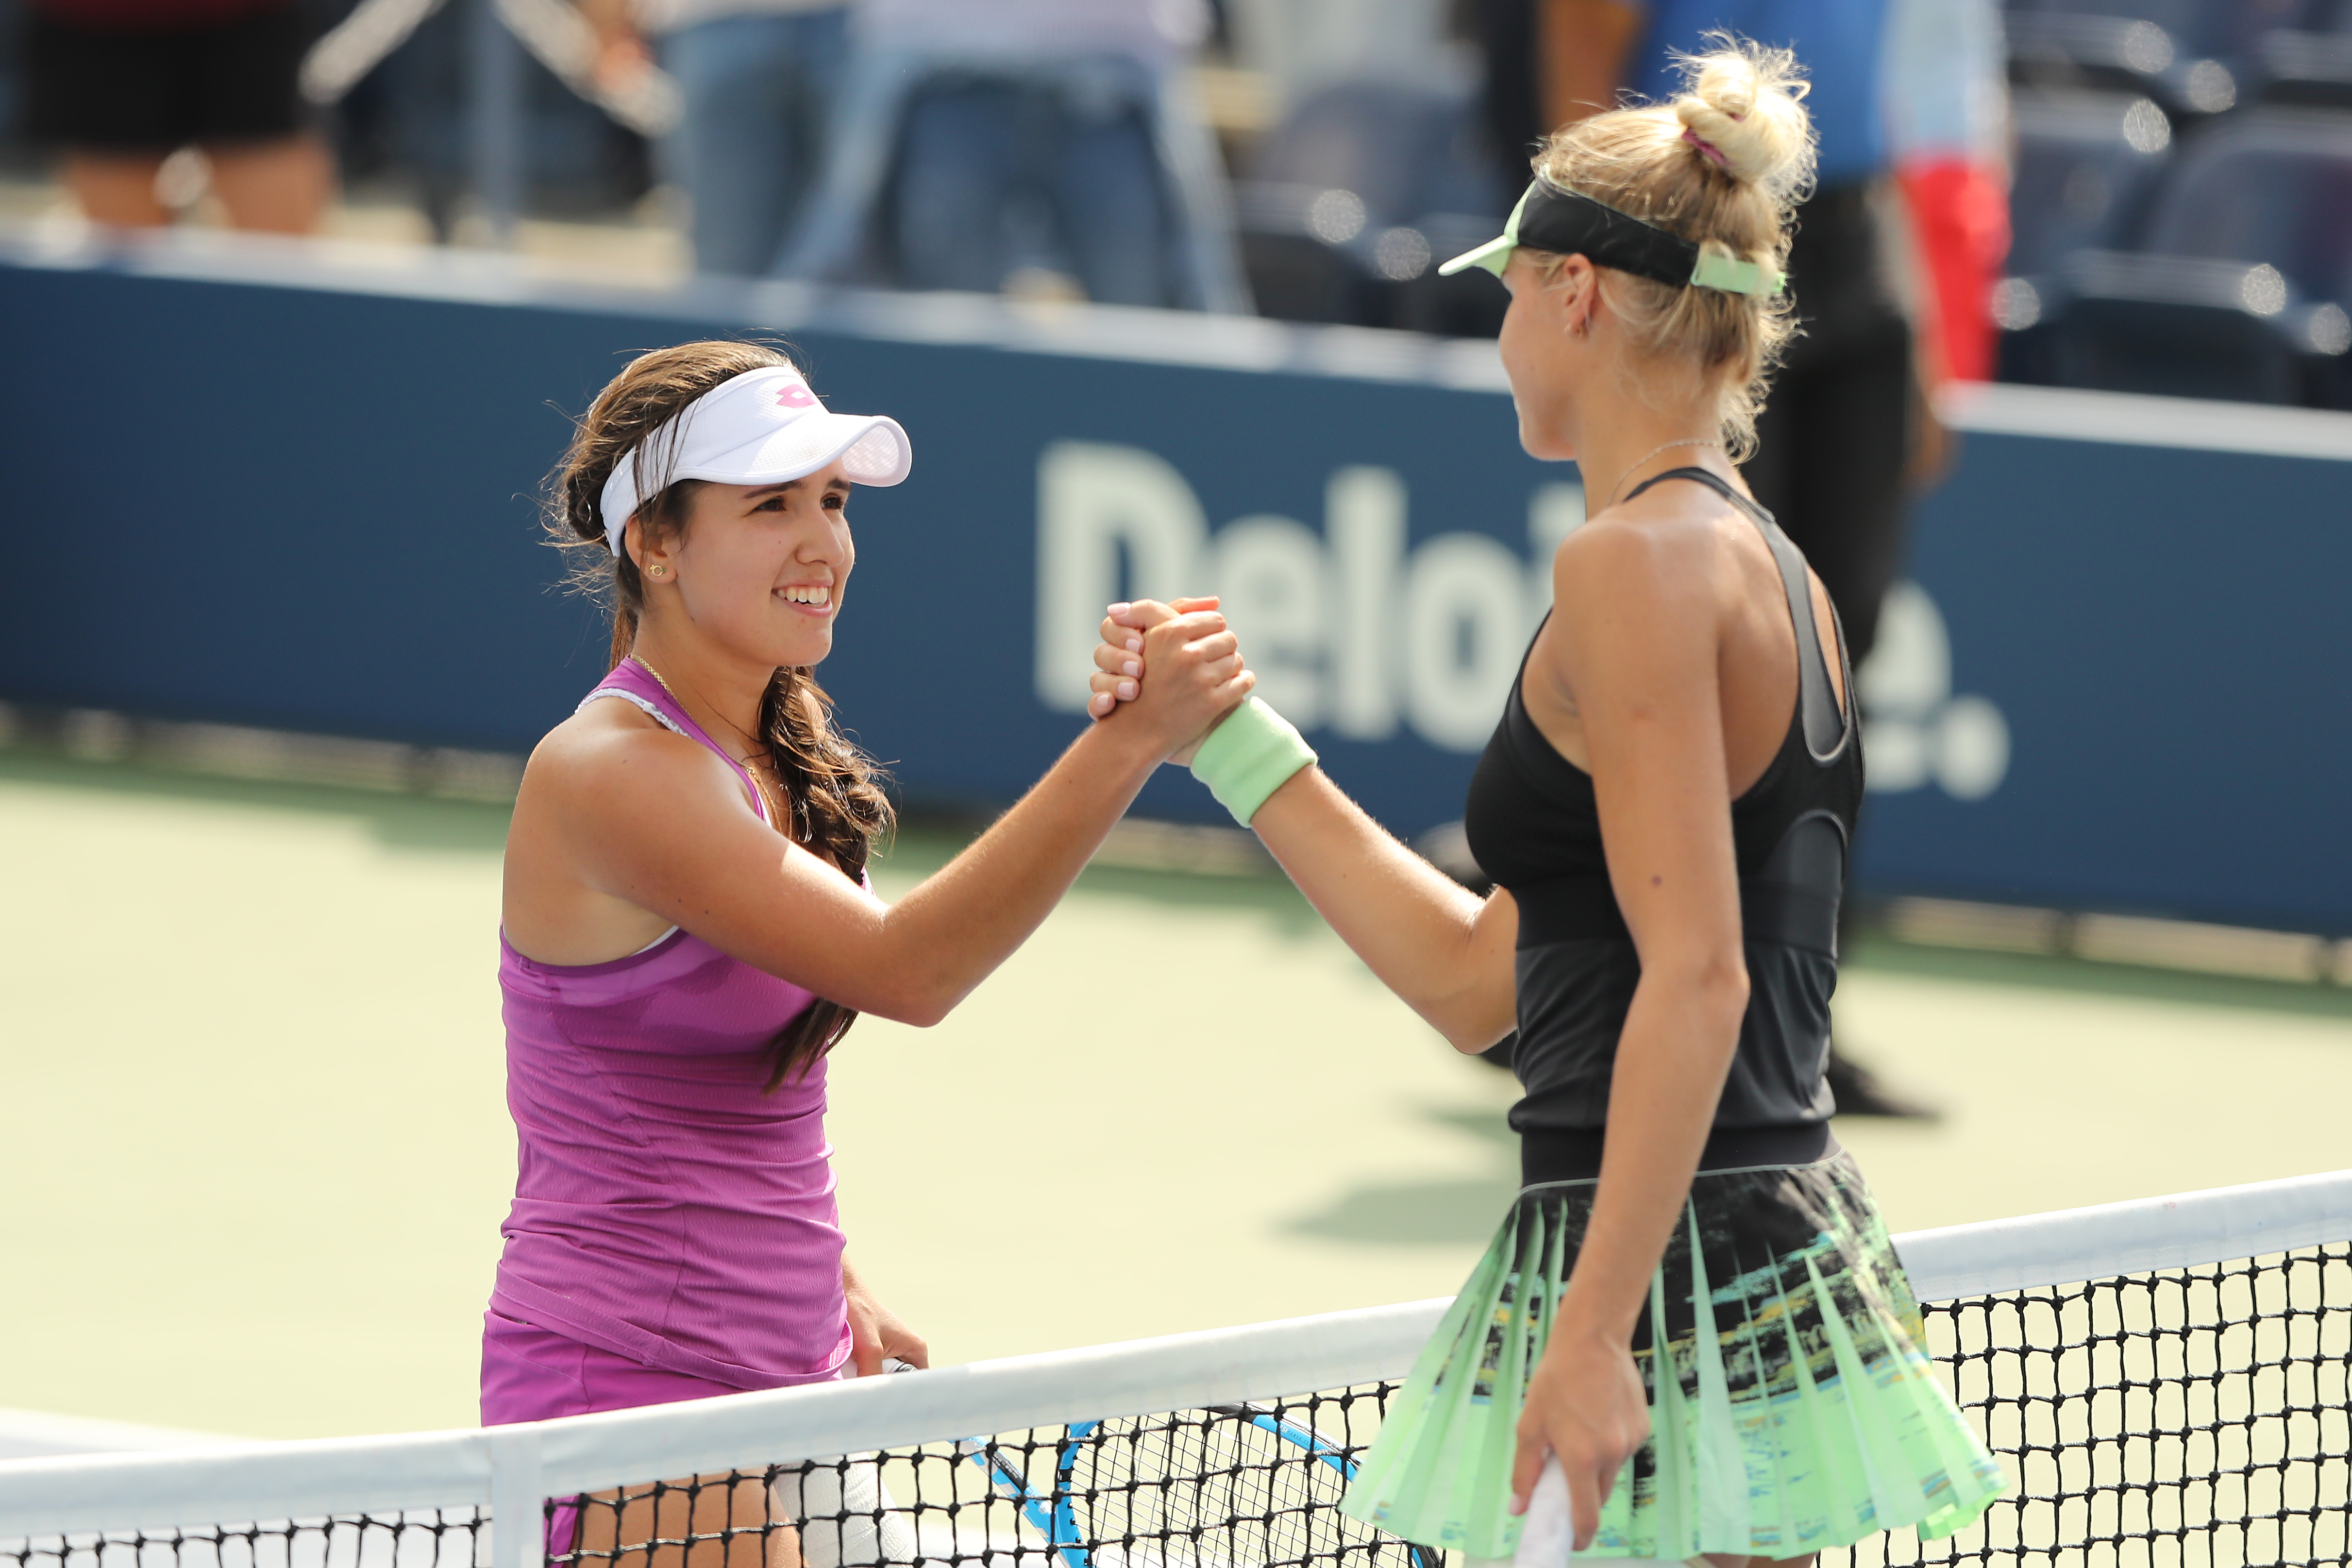 NEW YORK, NEW YORK - SEPTEMBER 08: Maria Camila Osorio Serrano of Colombia celebrates after winning her Junior Girl's Single's final match against Alexandra Yepifanova of United States on day fourteen of the 2019 US Open at the USTA Billie Jean King National Tennis Center on September 08, 2019 in the Queens borough of New York City. (Photo by Elsa/Getty Images)